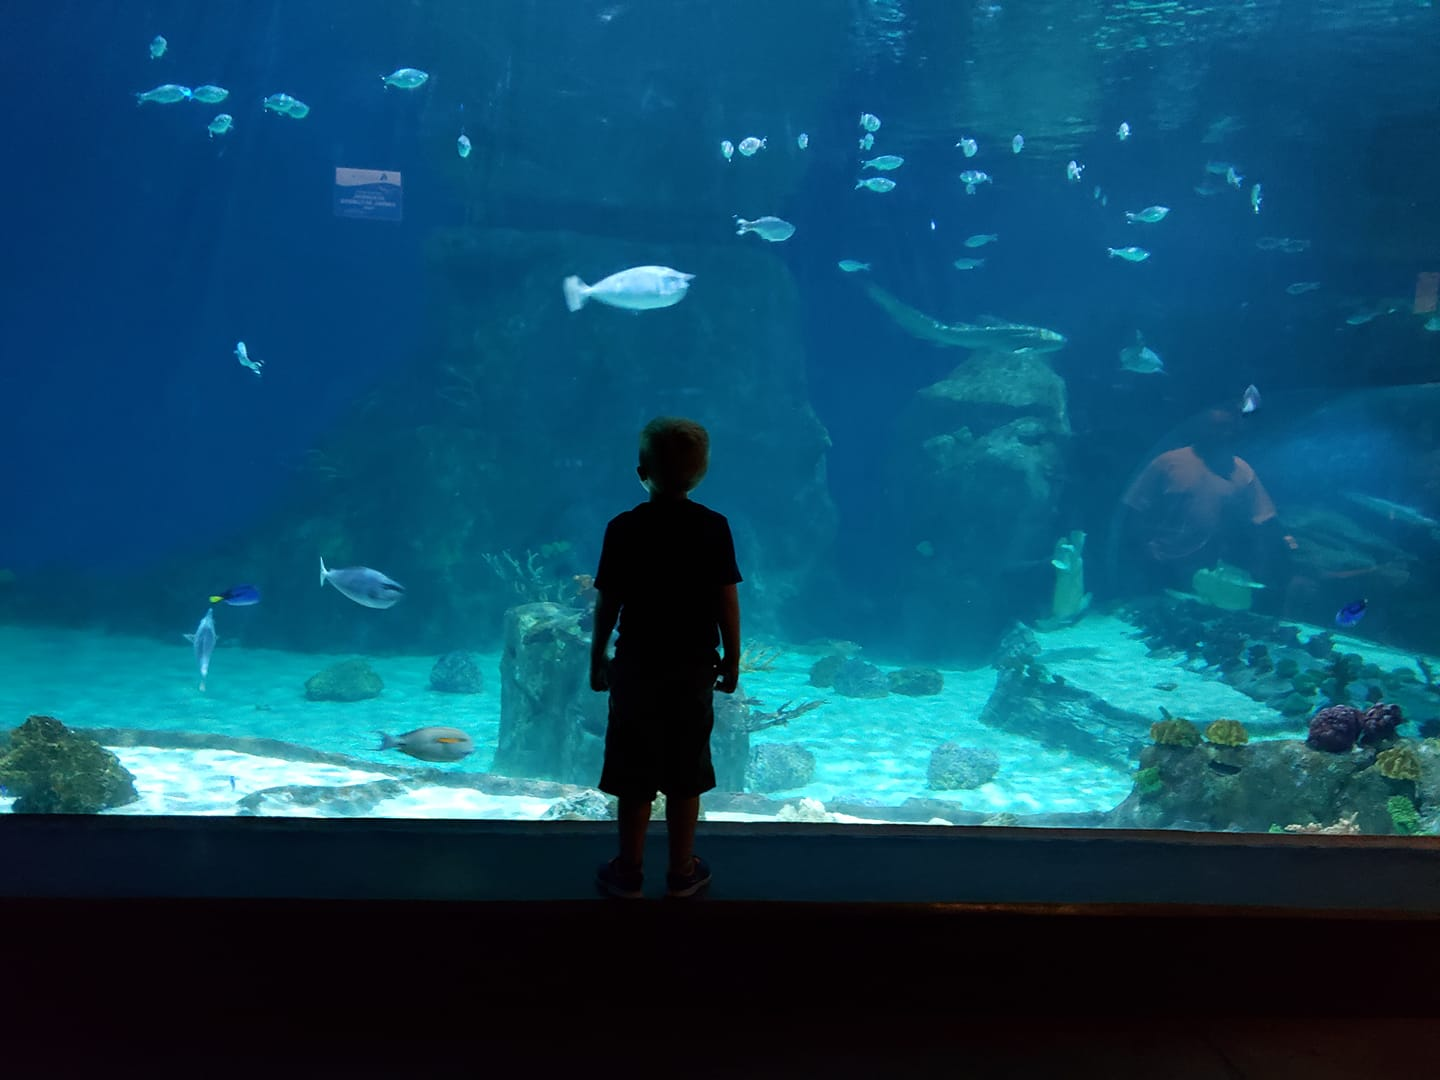 Silhouette of a child standing in front of a large aquariam